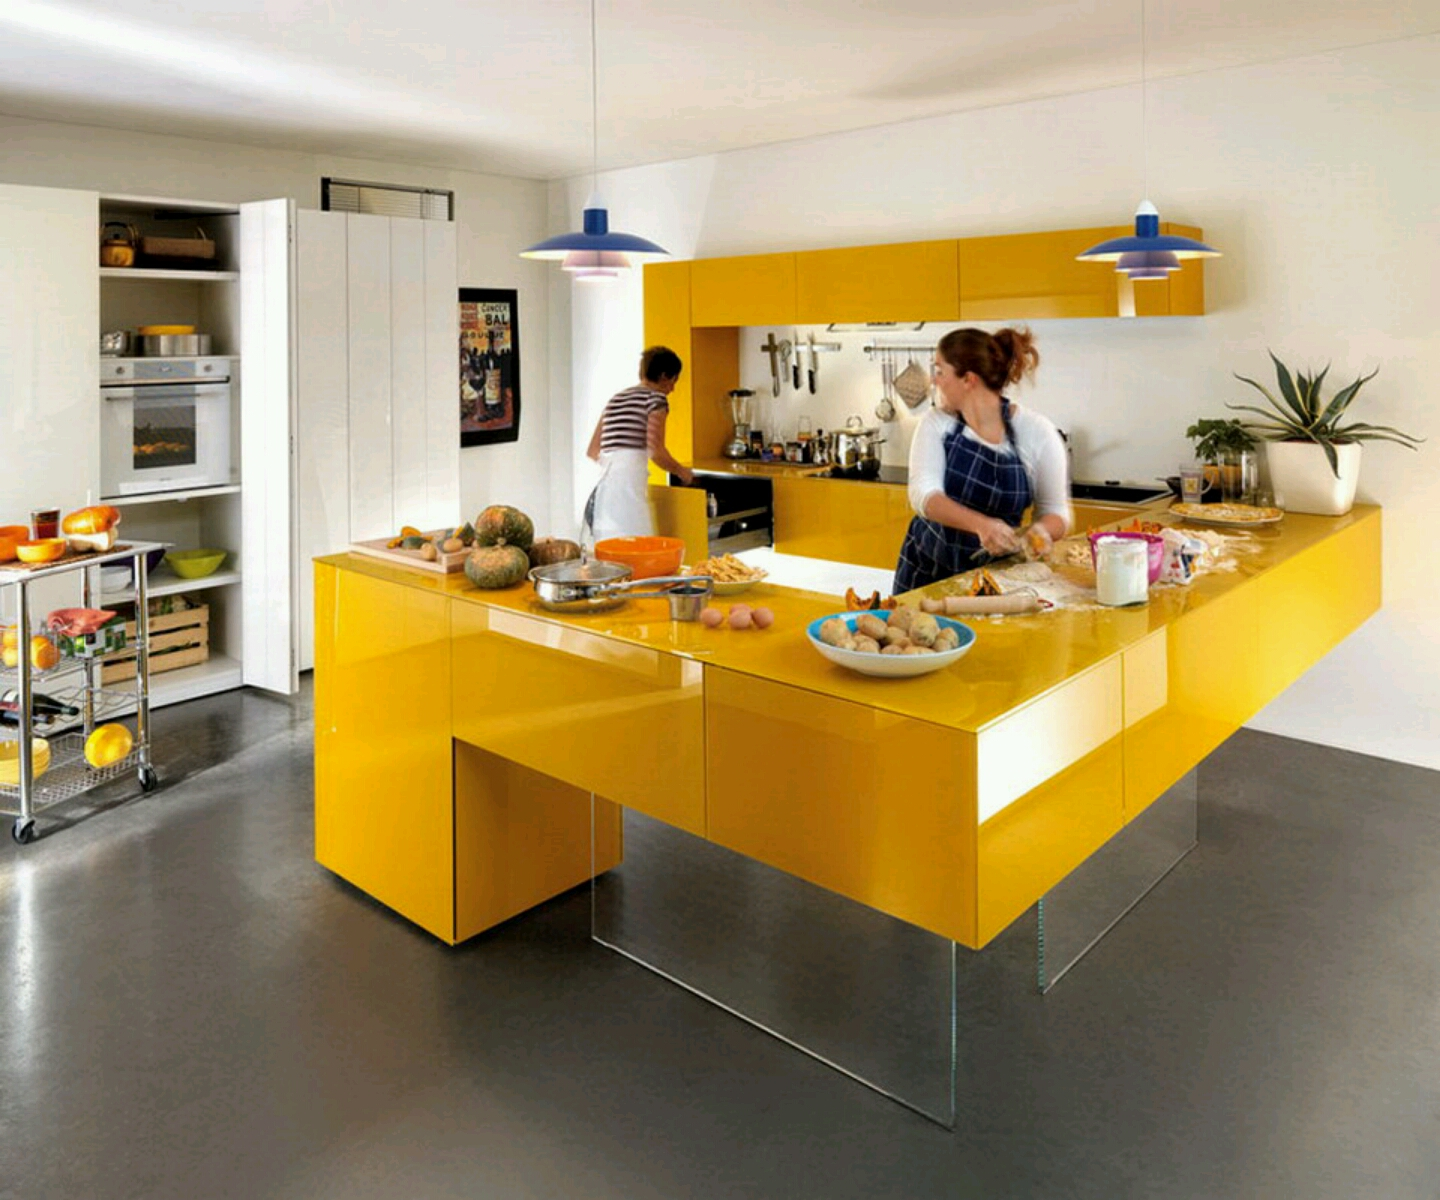 Modern kitchen cabinets designs ideas furniture gallery for Kitchen furniture design ideas